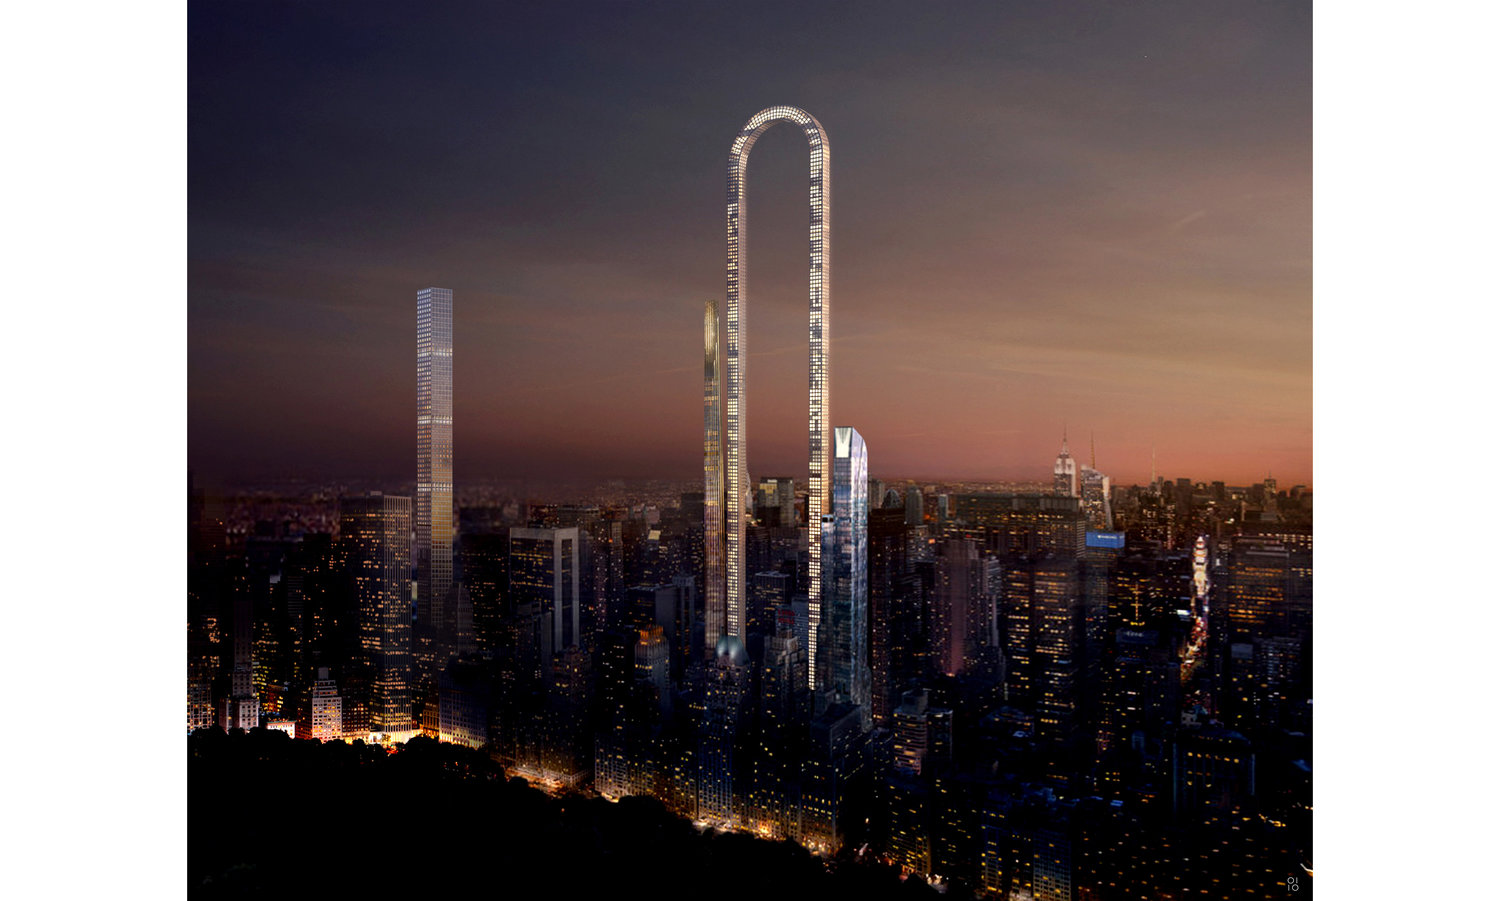 Big Bend – The Incredible U-shaped New York Skyscraper Will Be the 'Longest Building in the World'